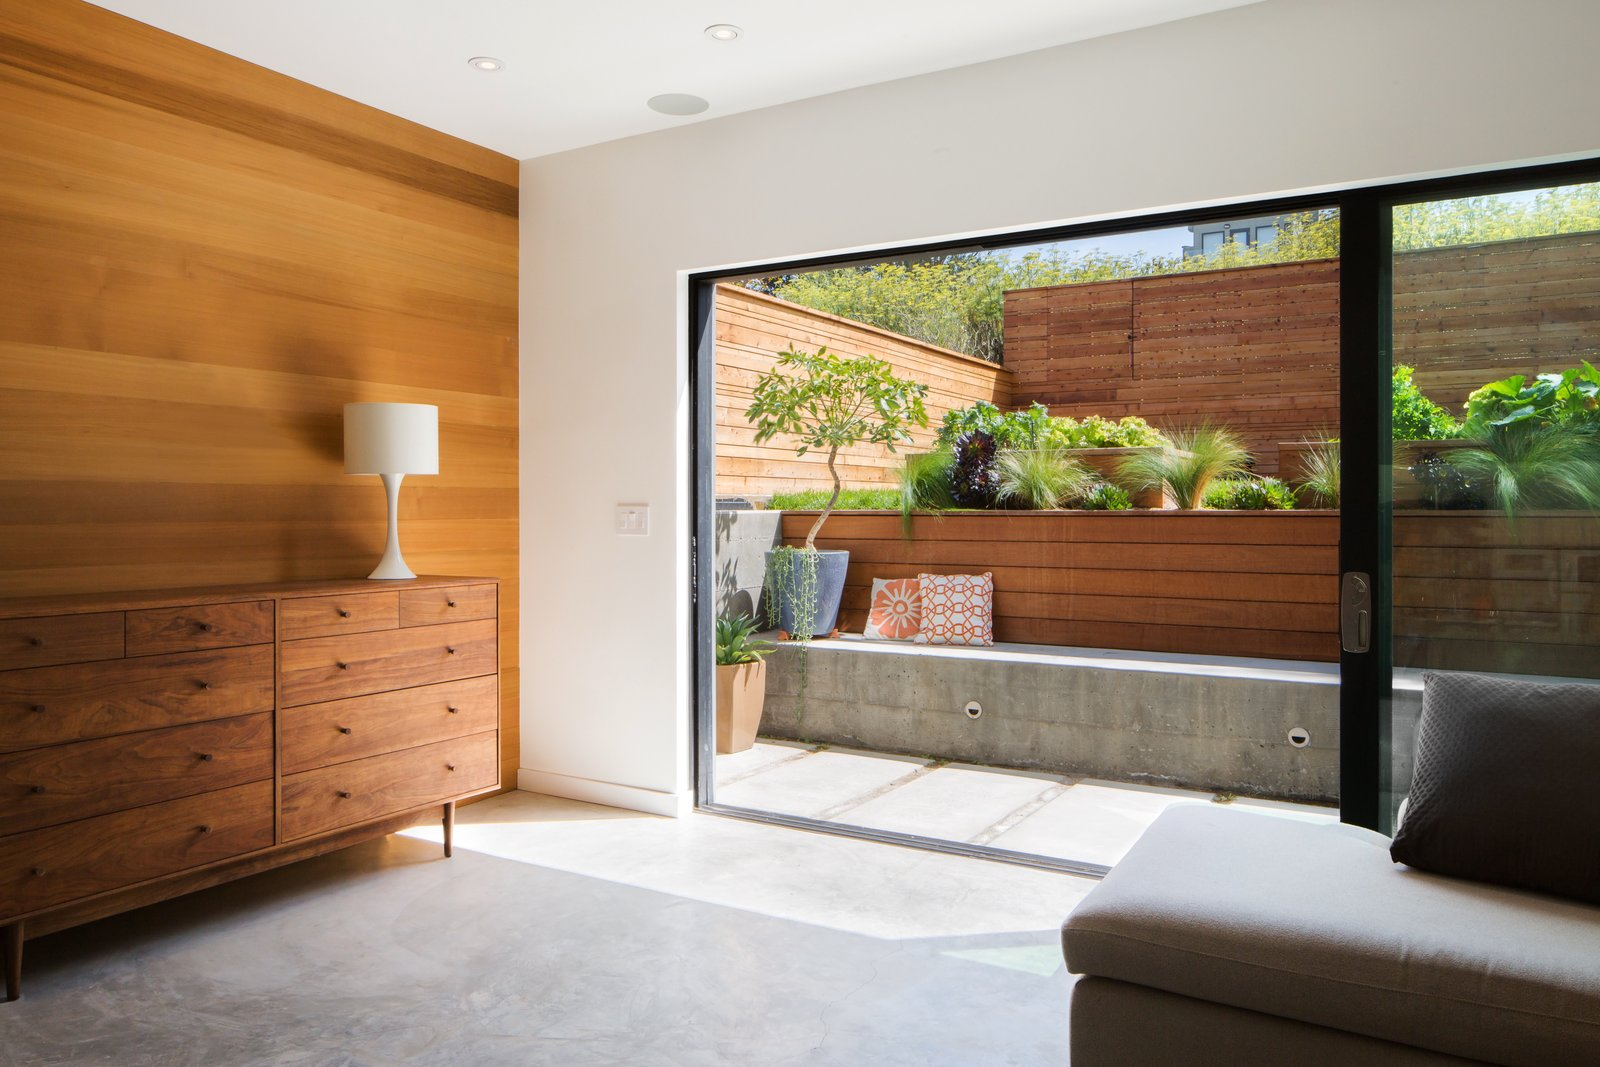 Den Tagged: Office, Study, Storage, and Concrete Floor.  27th Street - Noe Valley by patrick perez/designpad architecture